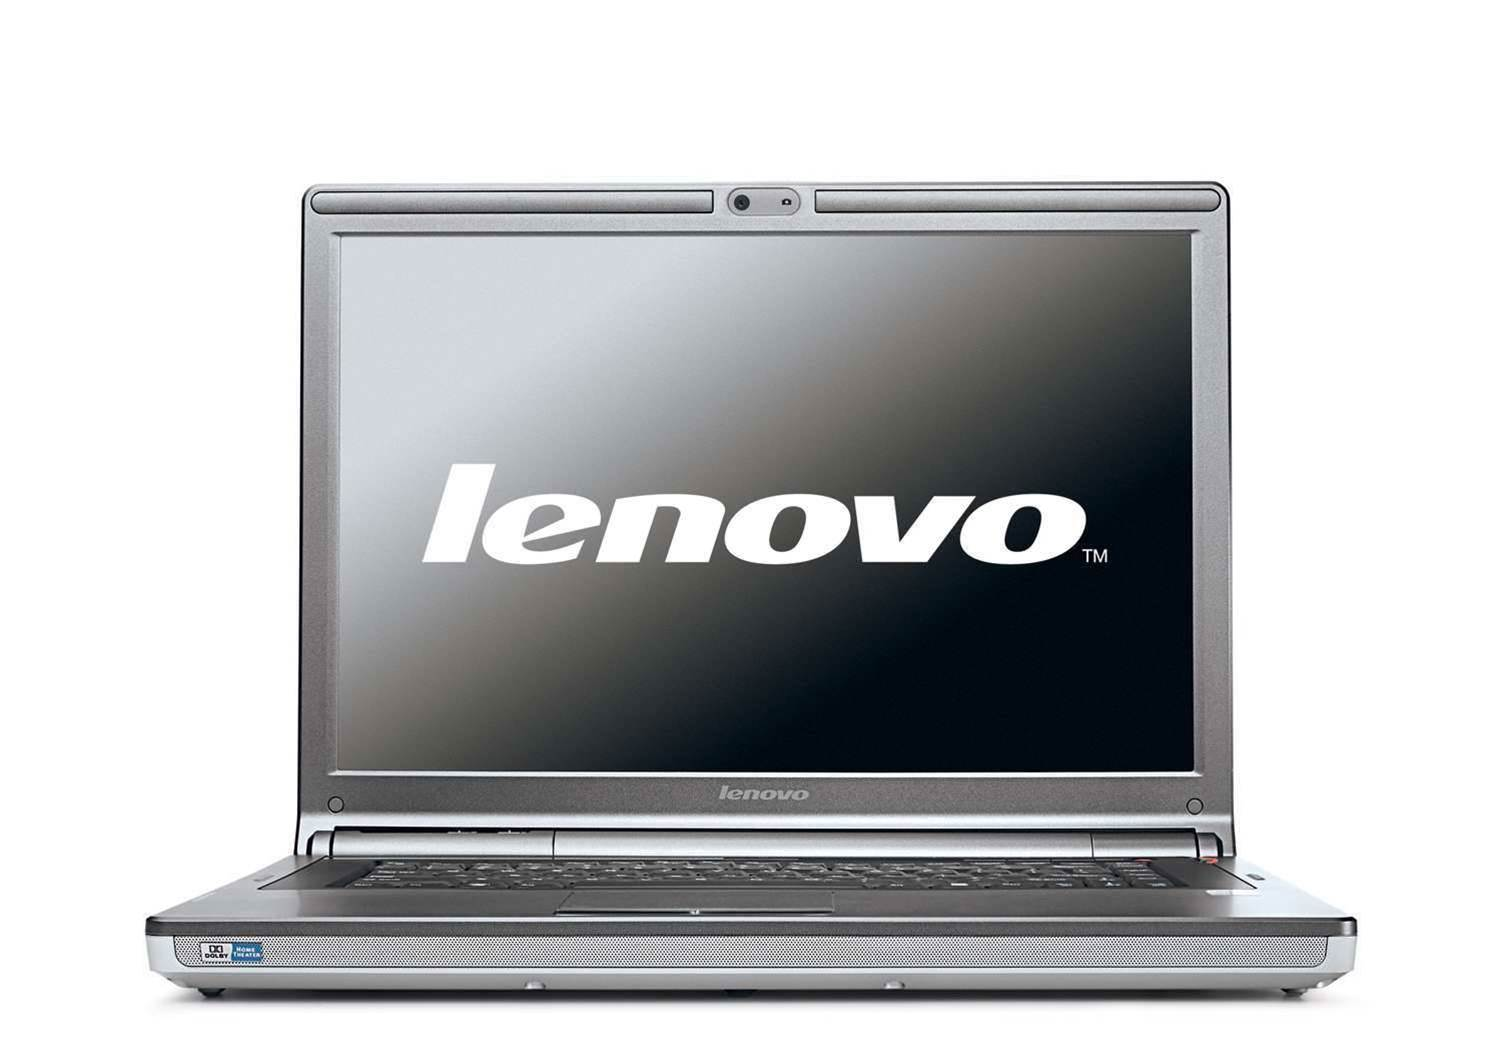 Lenovo urges customers to uninstall dangerously flawed app from its systems